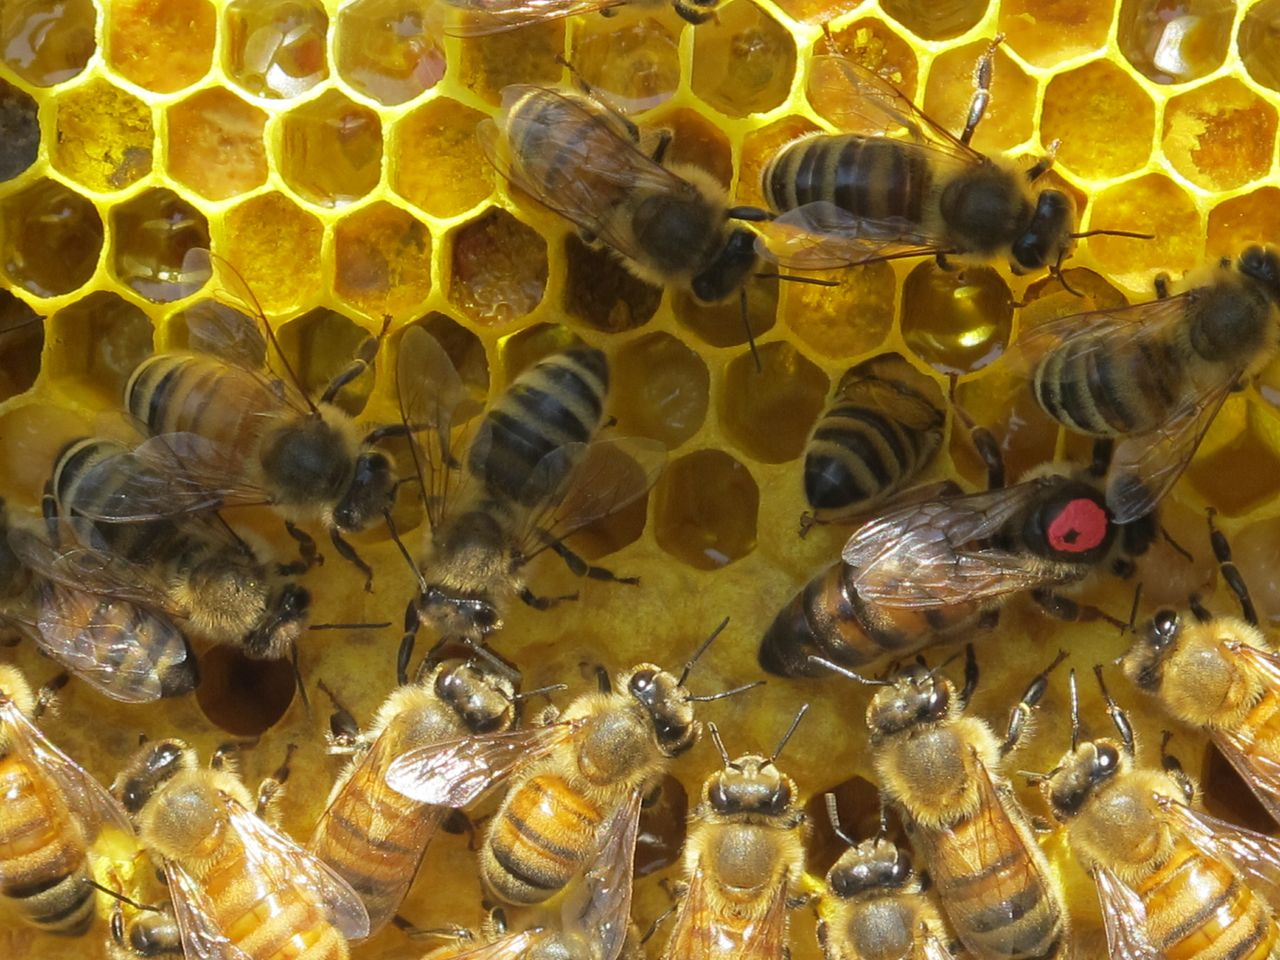 Bees - queen walks over bee bread - the pollen and nectar mix that will be fed to the larvae - photo courtesy Doug Mendonca